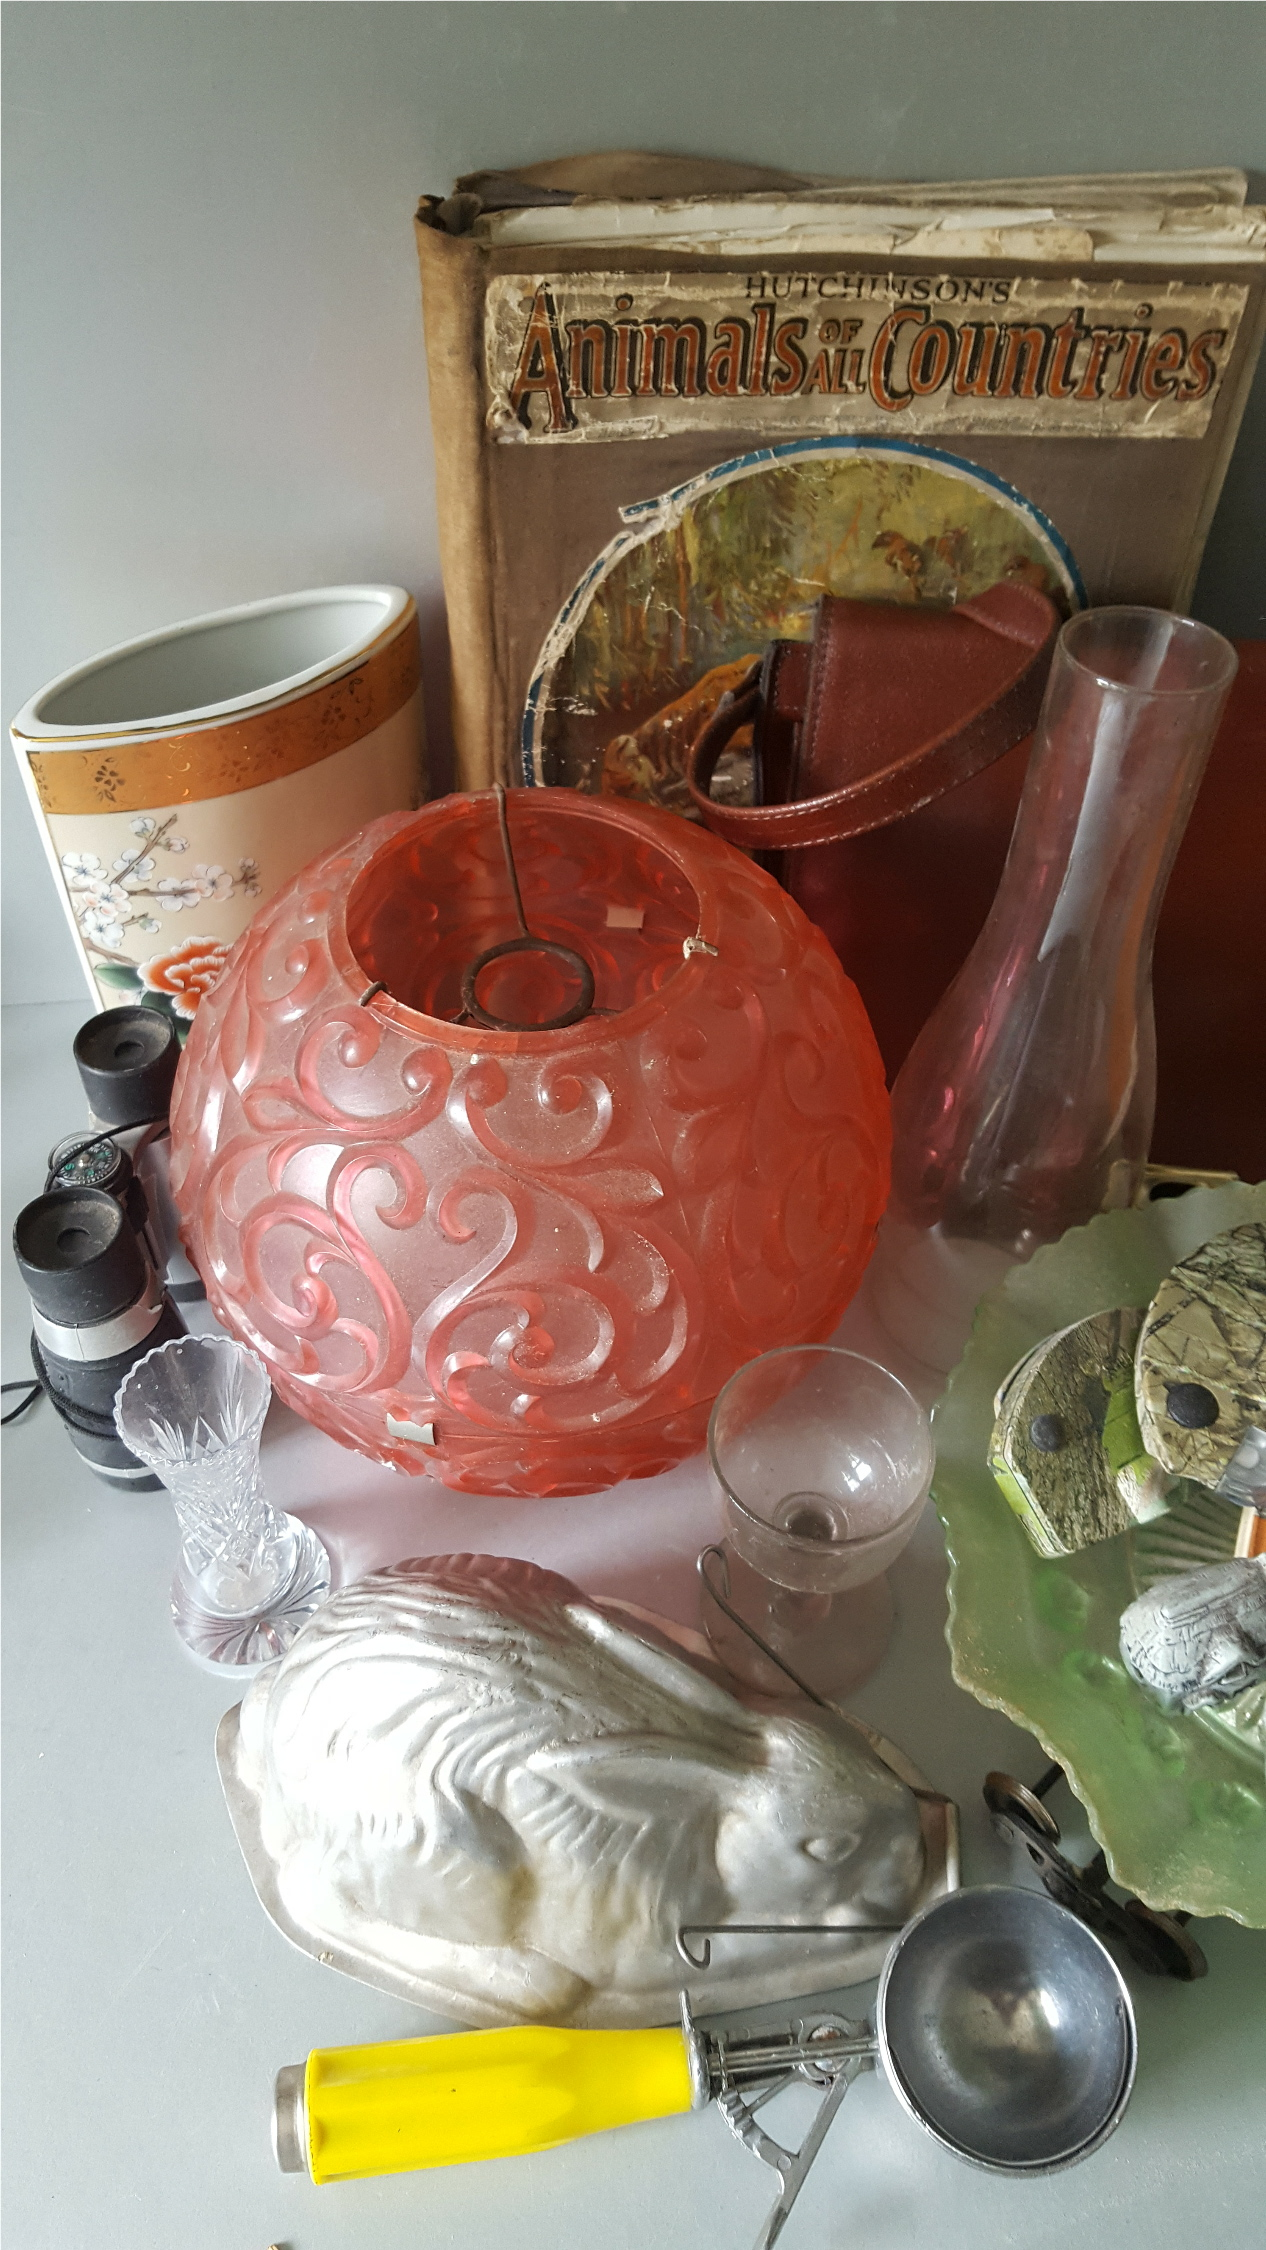 Lot 106 - Vintage Retro Parcel Items Includes Lighting Jelly Mould Cake Stand Bags Books Etc. NO RESERVE